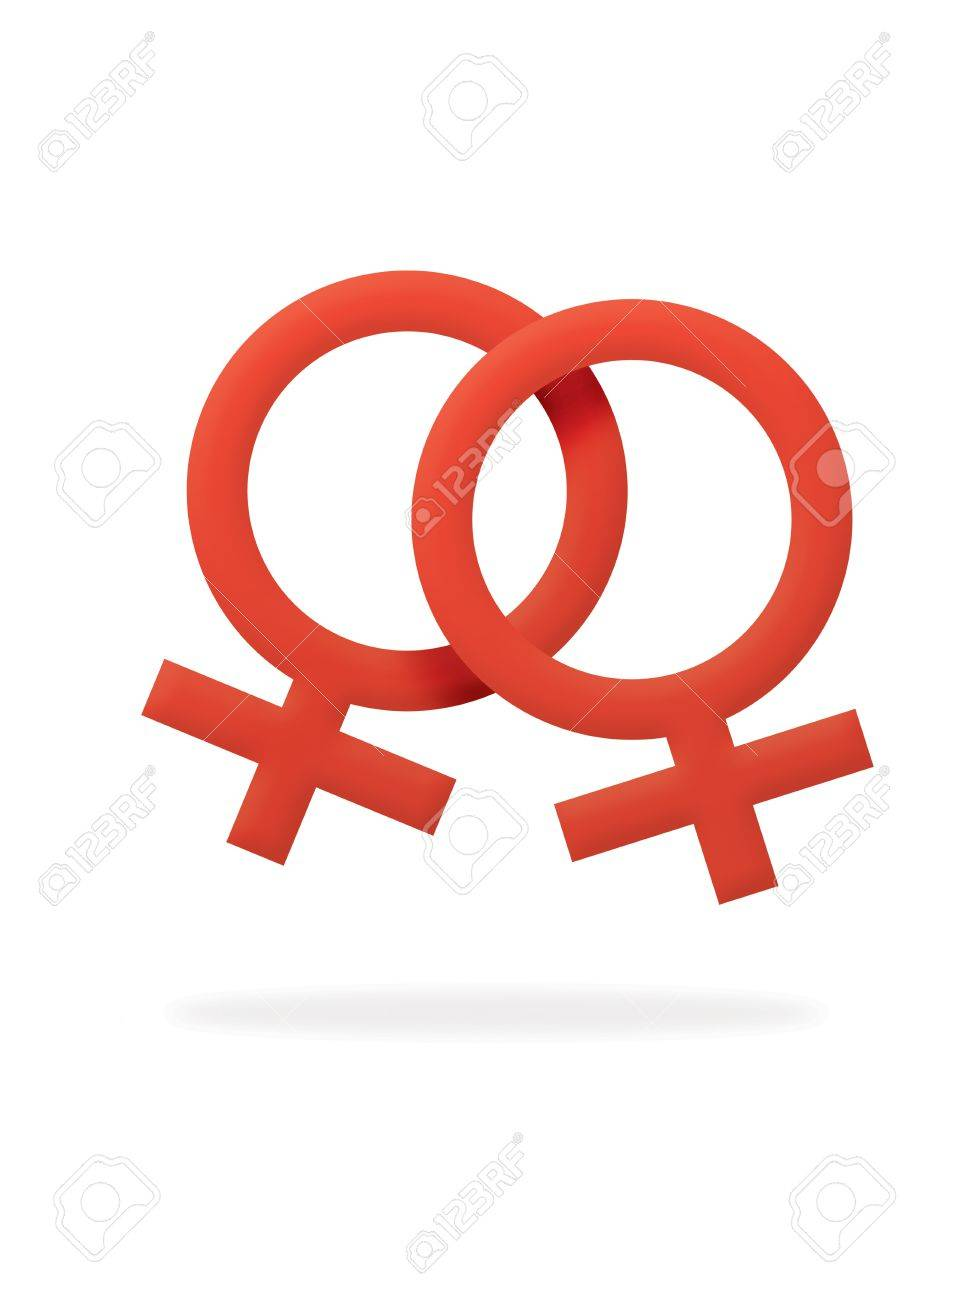 Female gay icon stock photo picture and royalty free image image female gay icon stock photo 8534891 buycottarizona